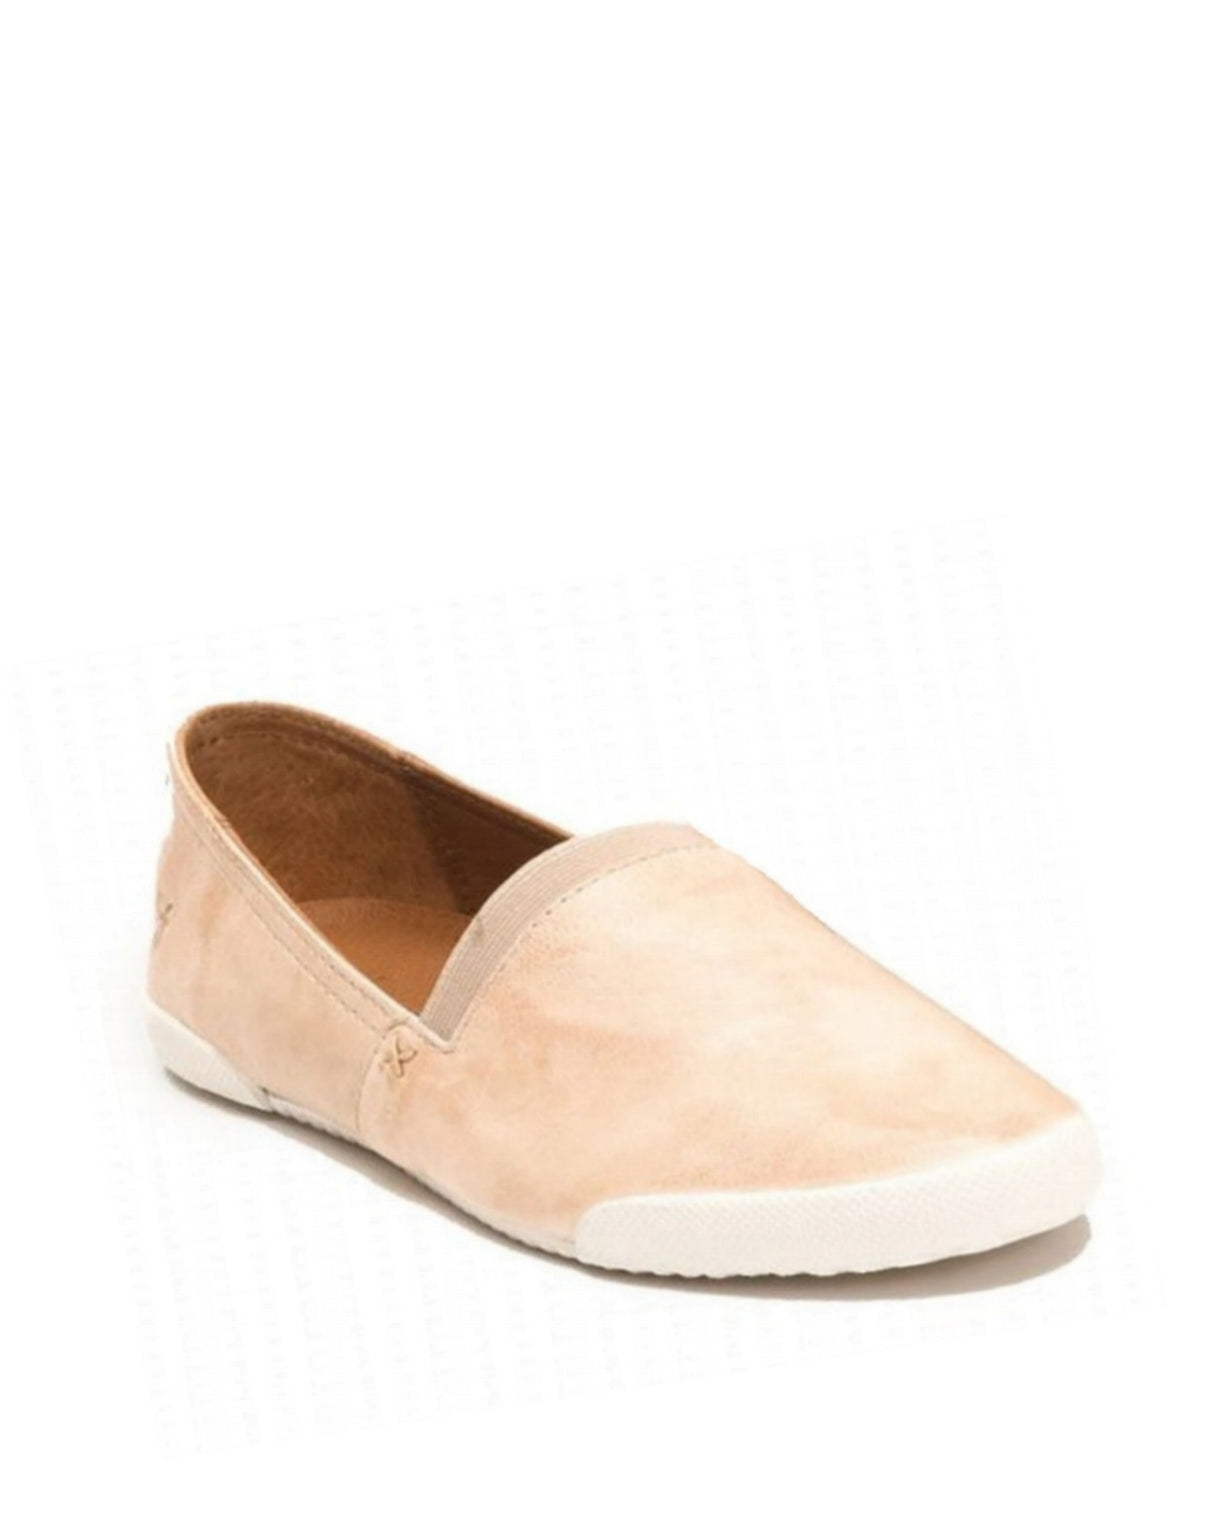 Frye Melanie Slip On - Cream